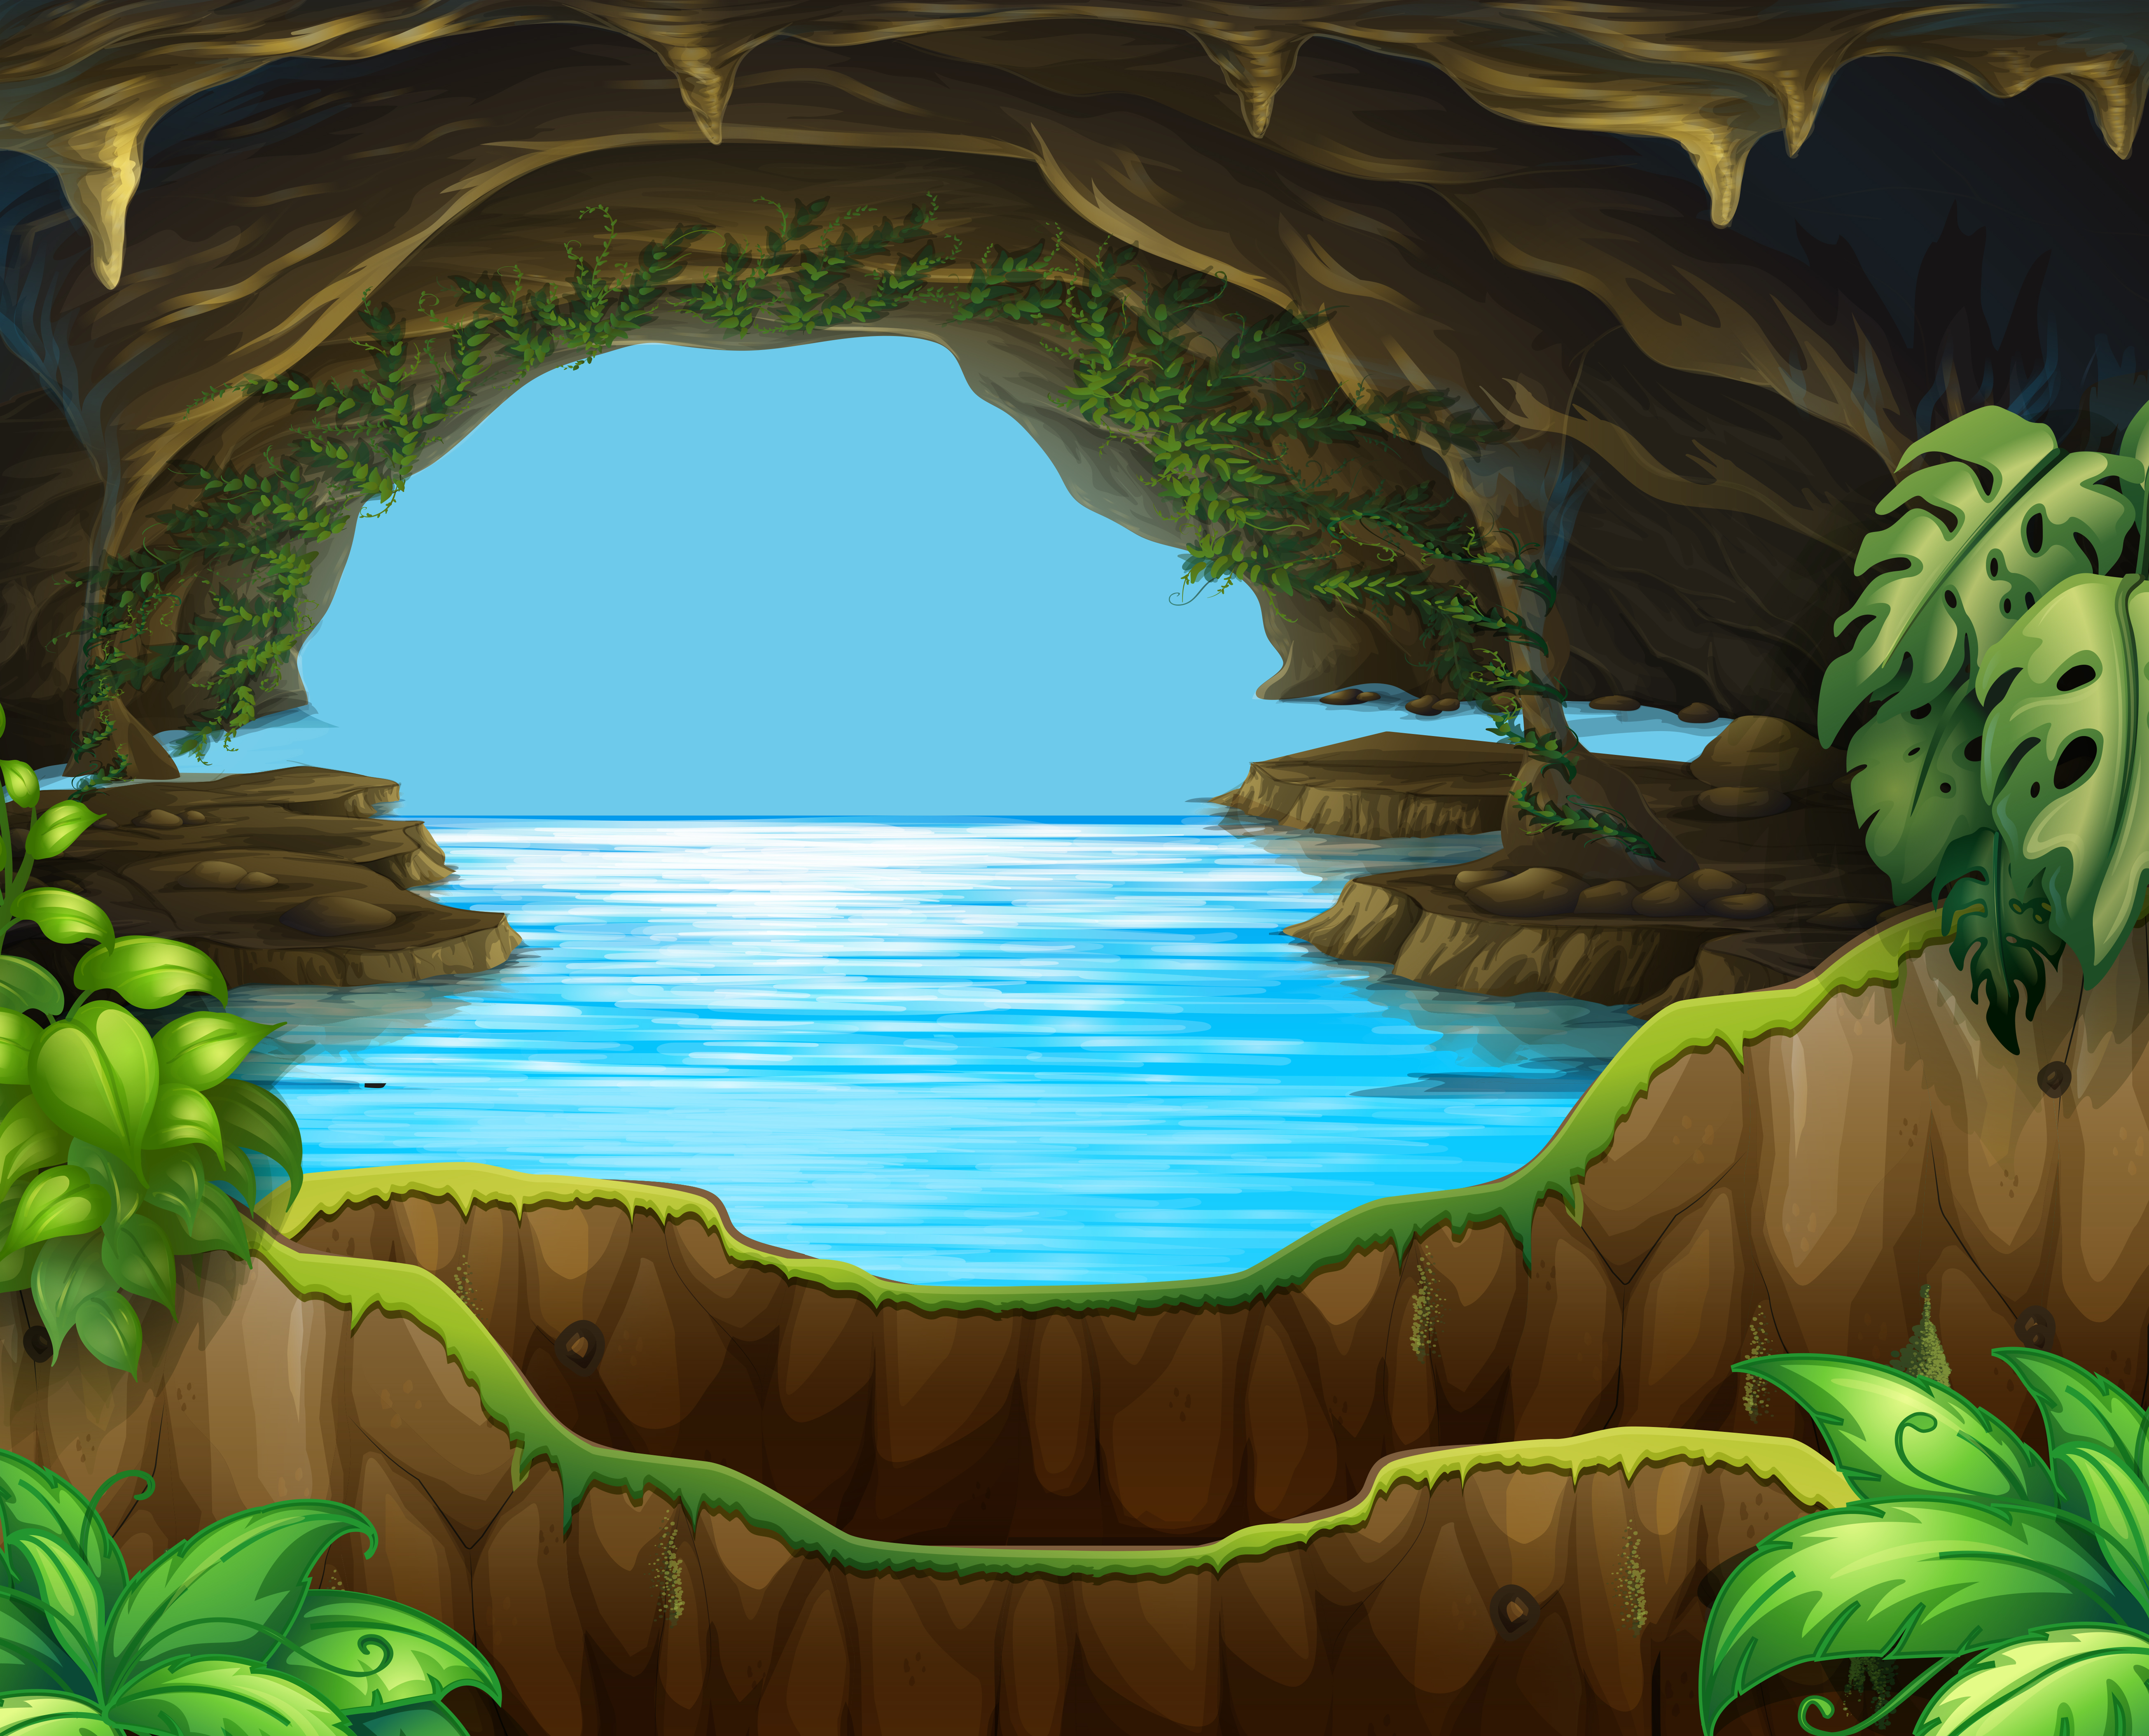 Natural water in cave - Download Free Vectors, Clipart ...